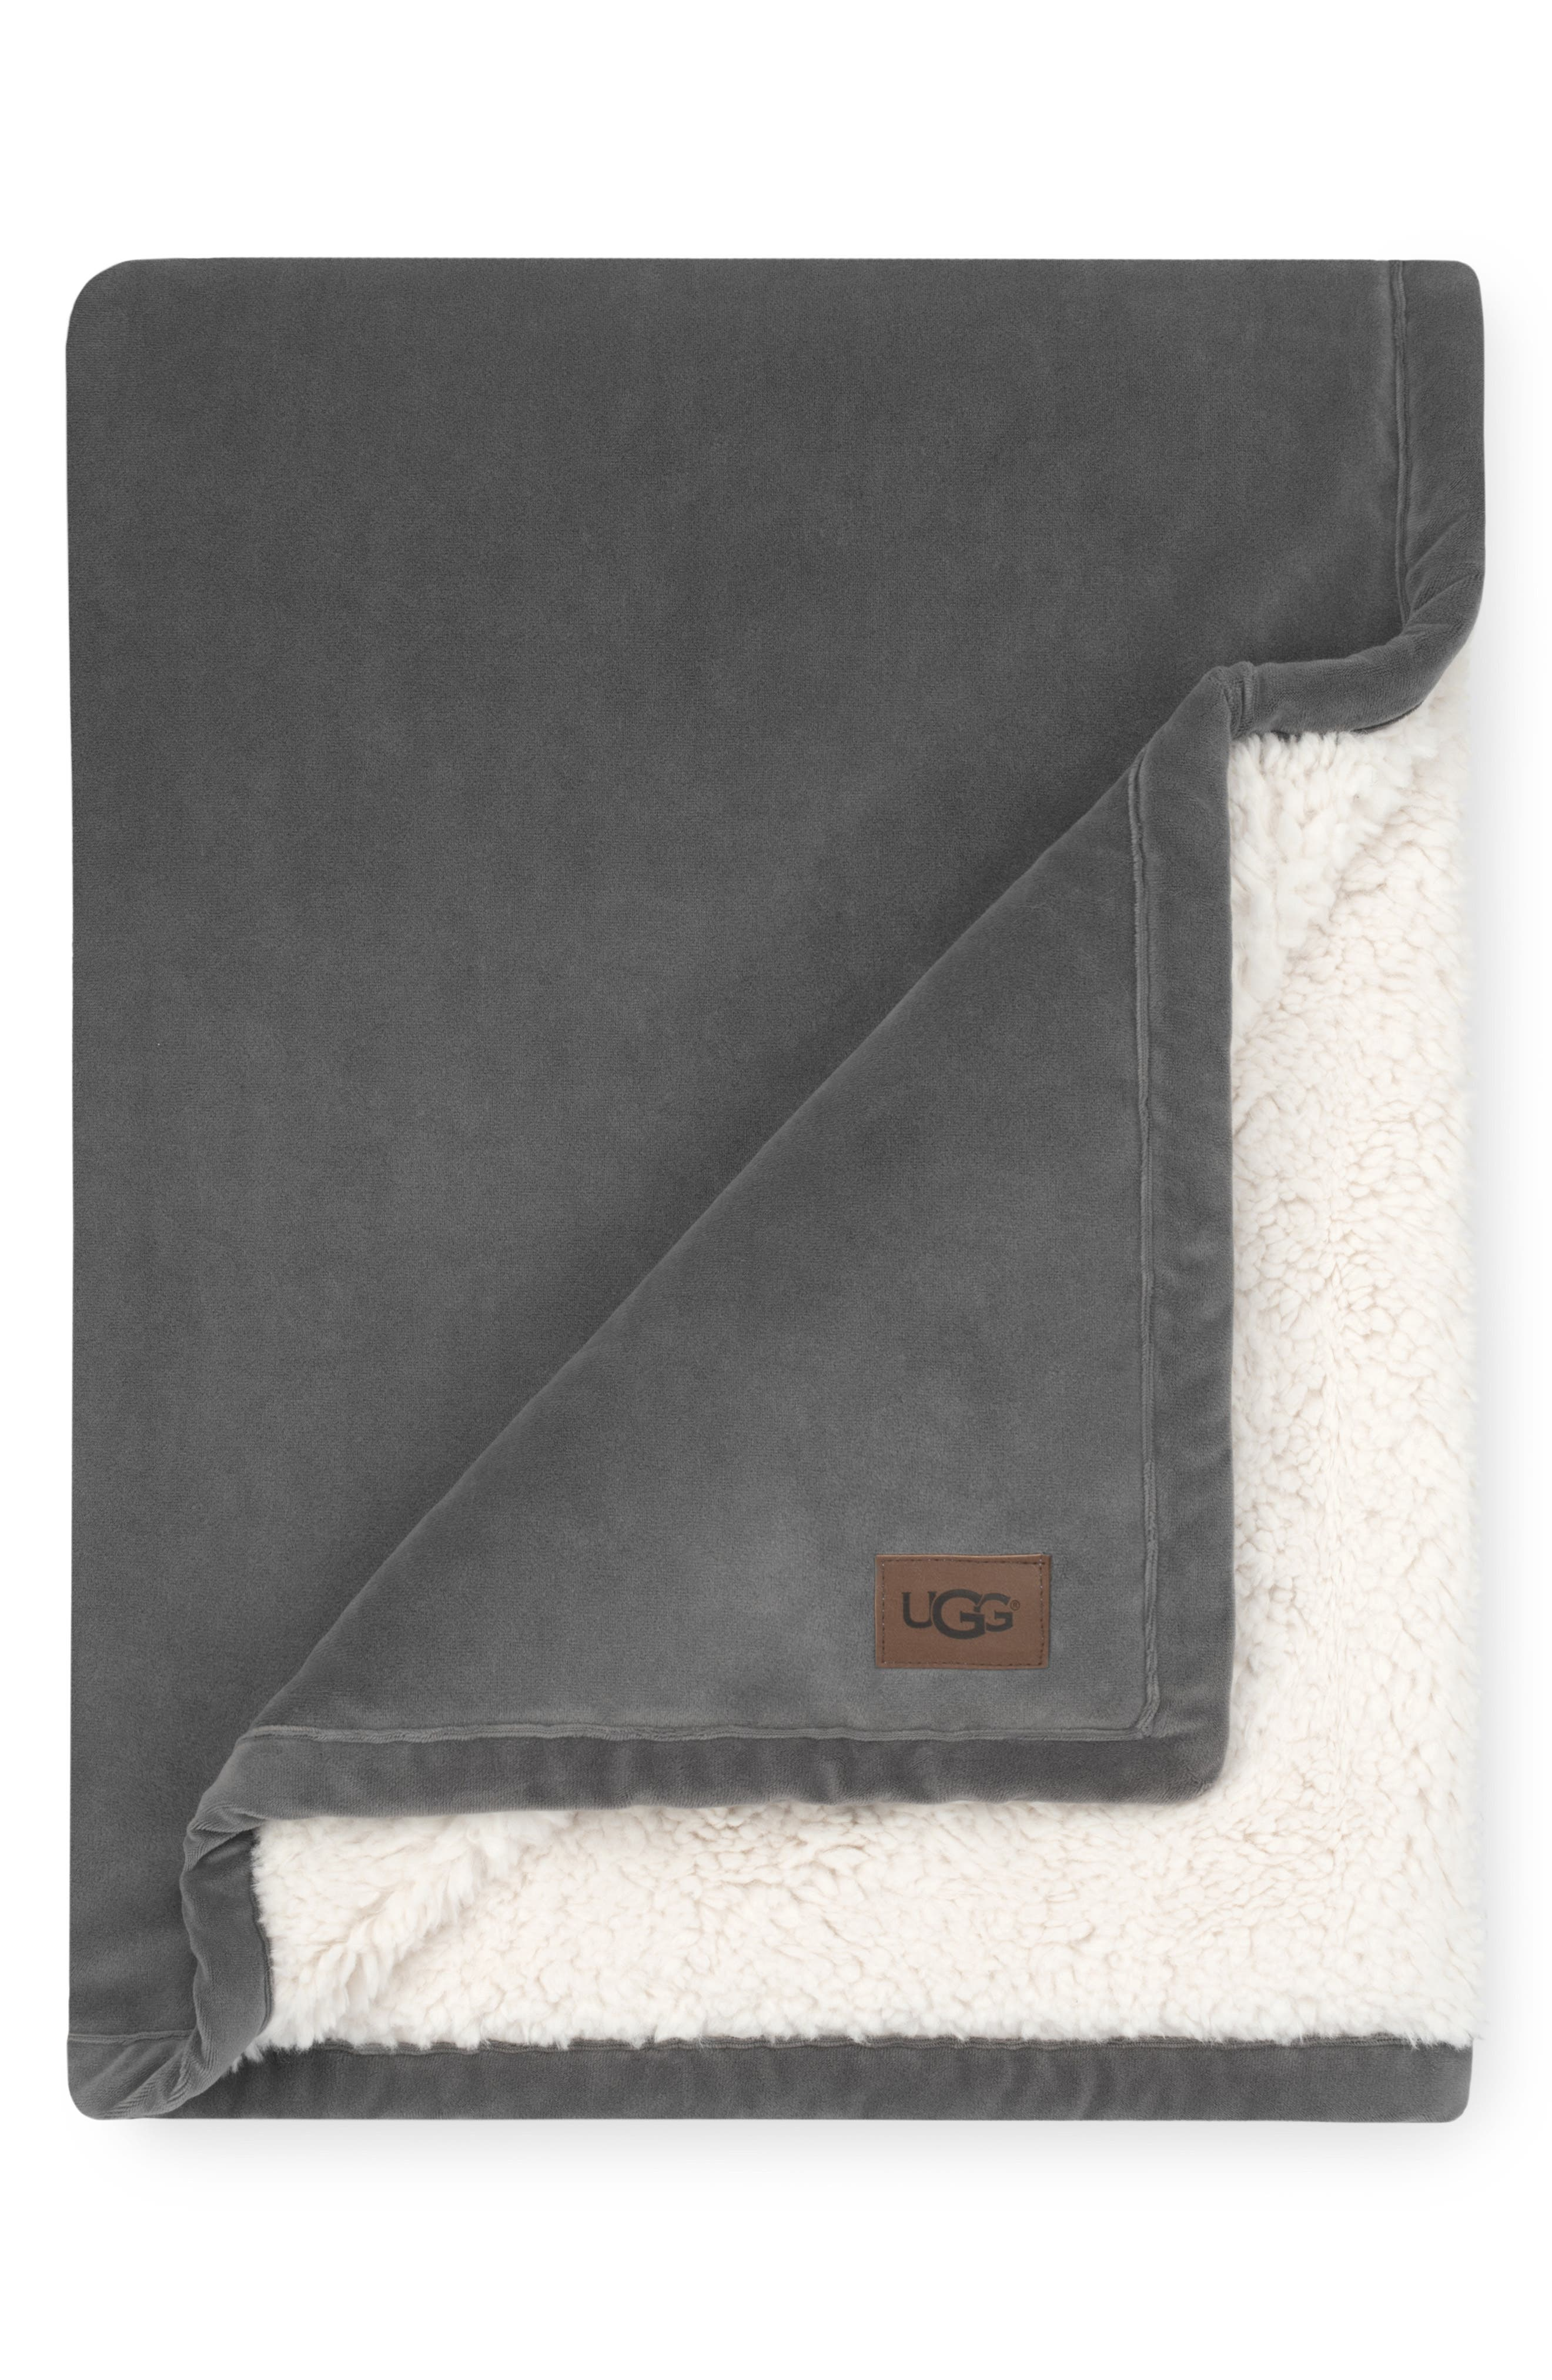 UGG<SUP>®</SUP>, Bliss Fuzzy Throw, Main thumbnail 1, color, CHARCOAL